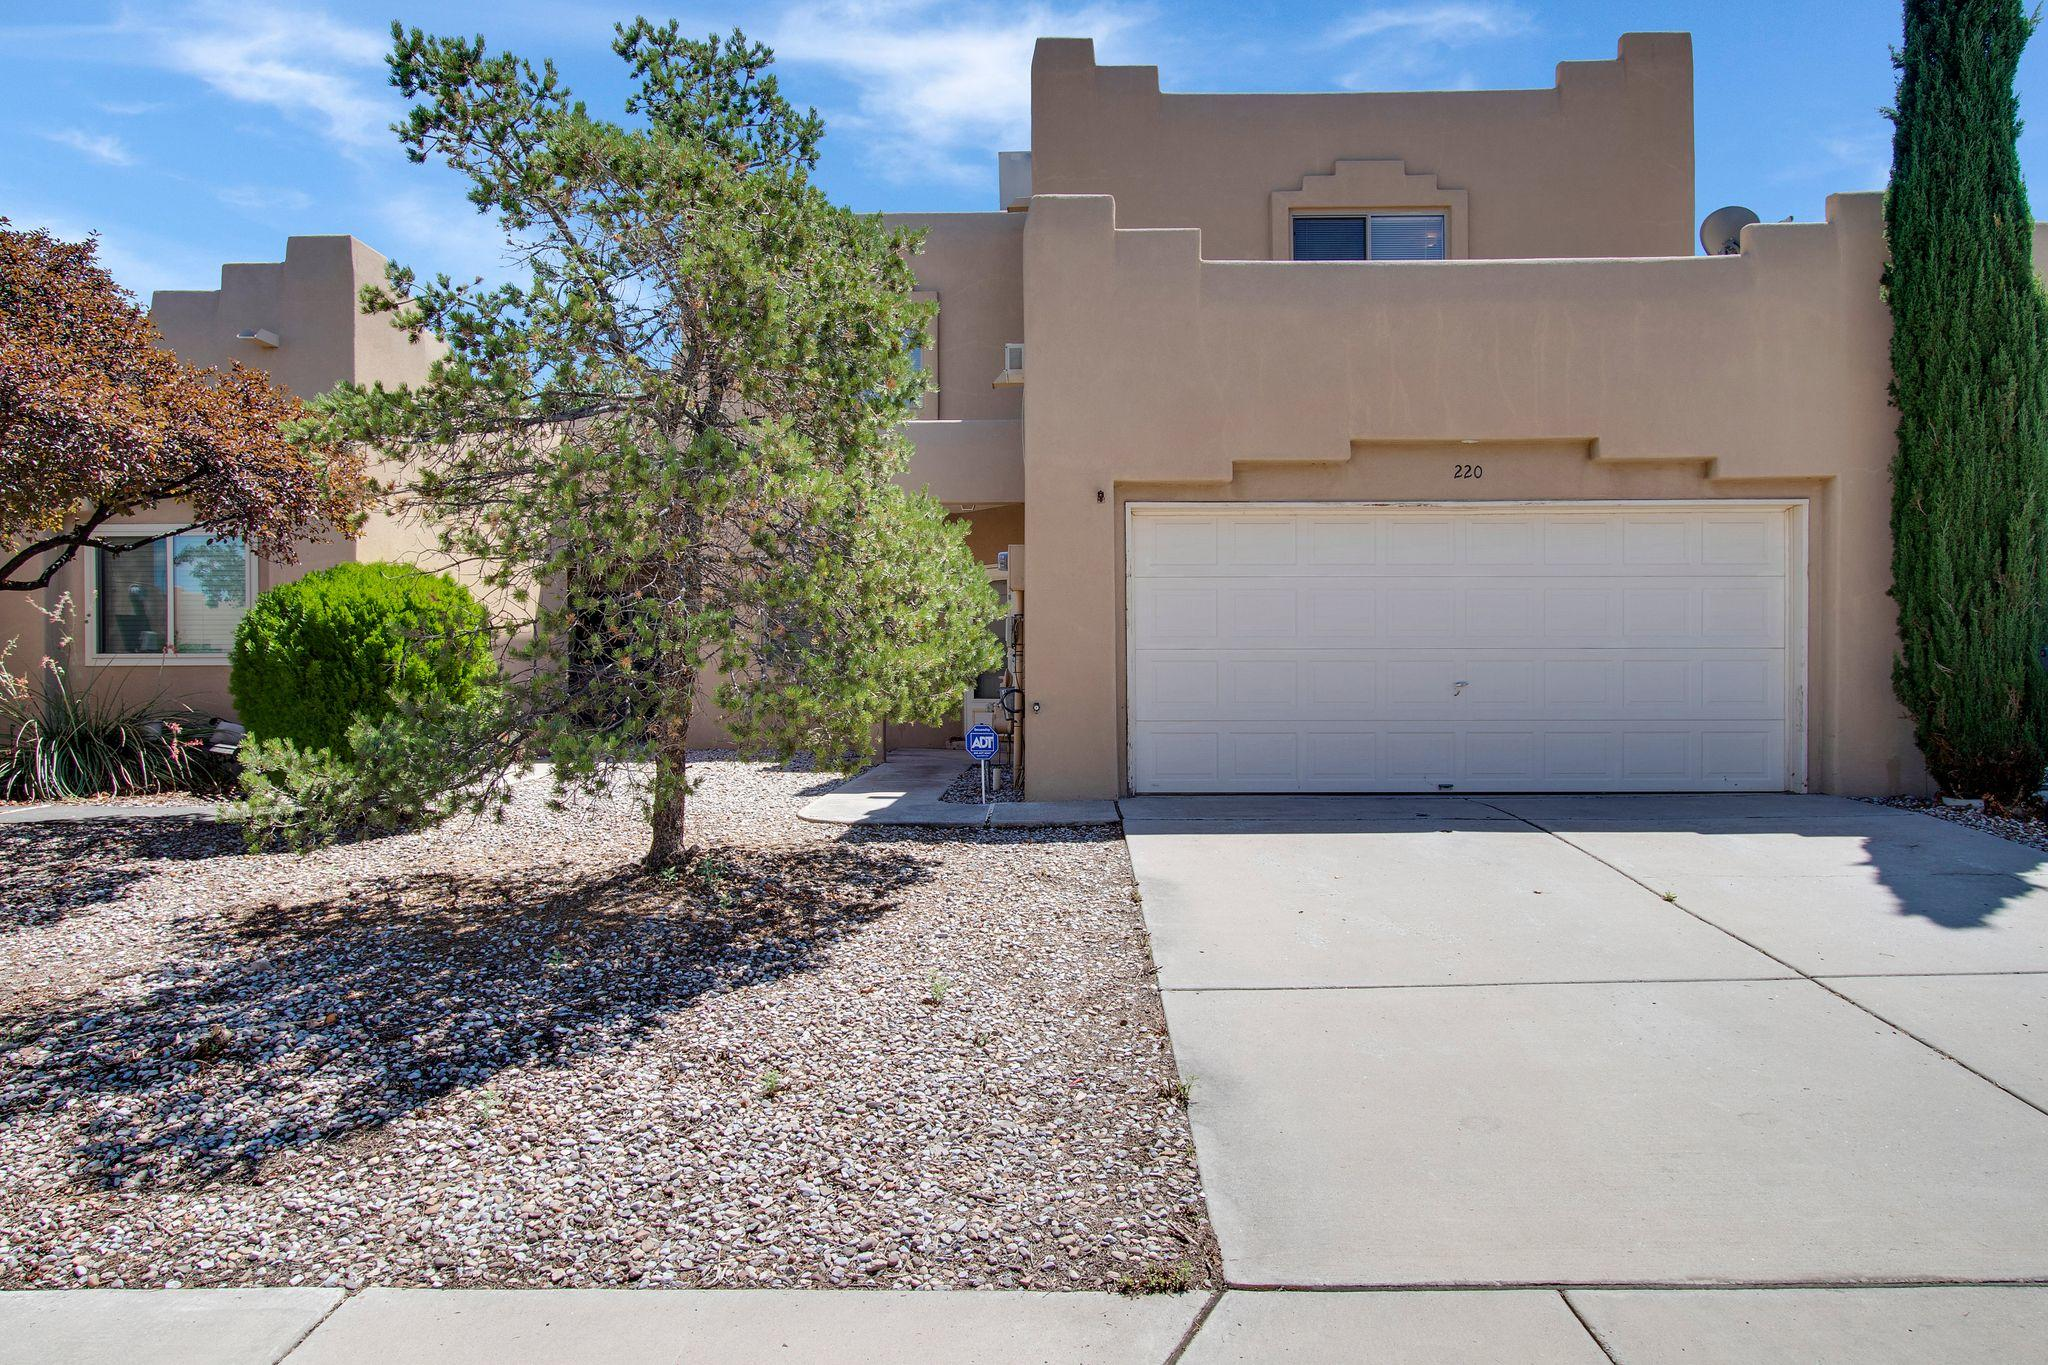 Welcome to your spacious townhome just minutes from Kirtland Air Force Base! You will enjoy the mountain views from your generous back yard and upstairs East-facing bedrooms. There is a neighborhood park and courtyard providing space between the units and allowing for the mountains to shine through. Inside the home, you'll walk in to an abundant living room area with a gas fireplace and crisp, modern flooring that flows into the kitchen. You'll find a sliding glass door leading you to your own back yard patio, providing indoor/outdoor living. Upstairs, there are a total of four bedrooms and two full bathrooms! All of this comes at a price point under $200,000. All offers considered Sunday, August 2nd, at noon.